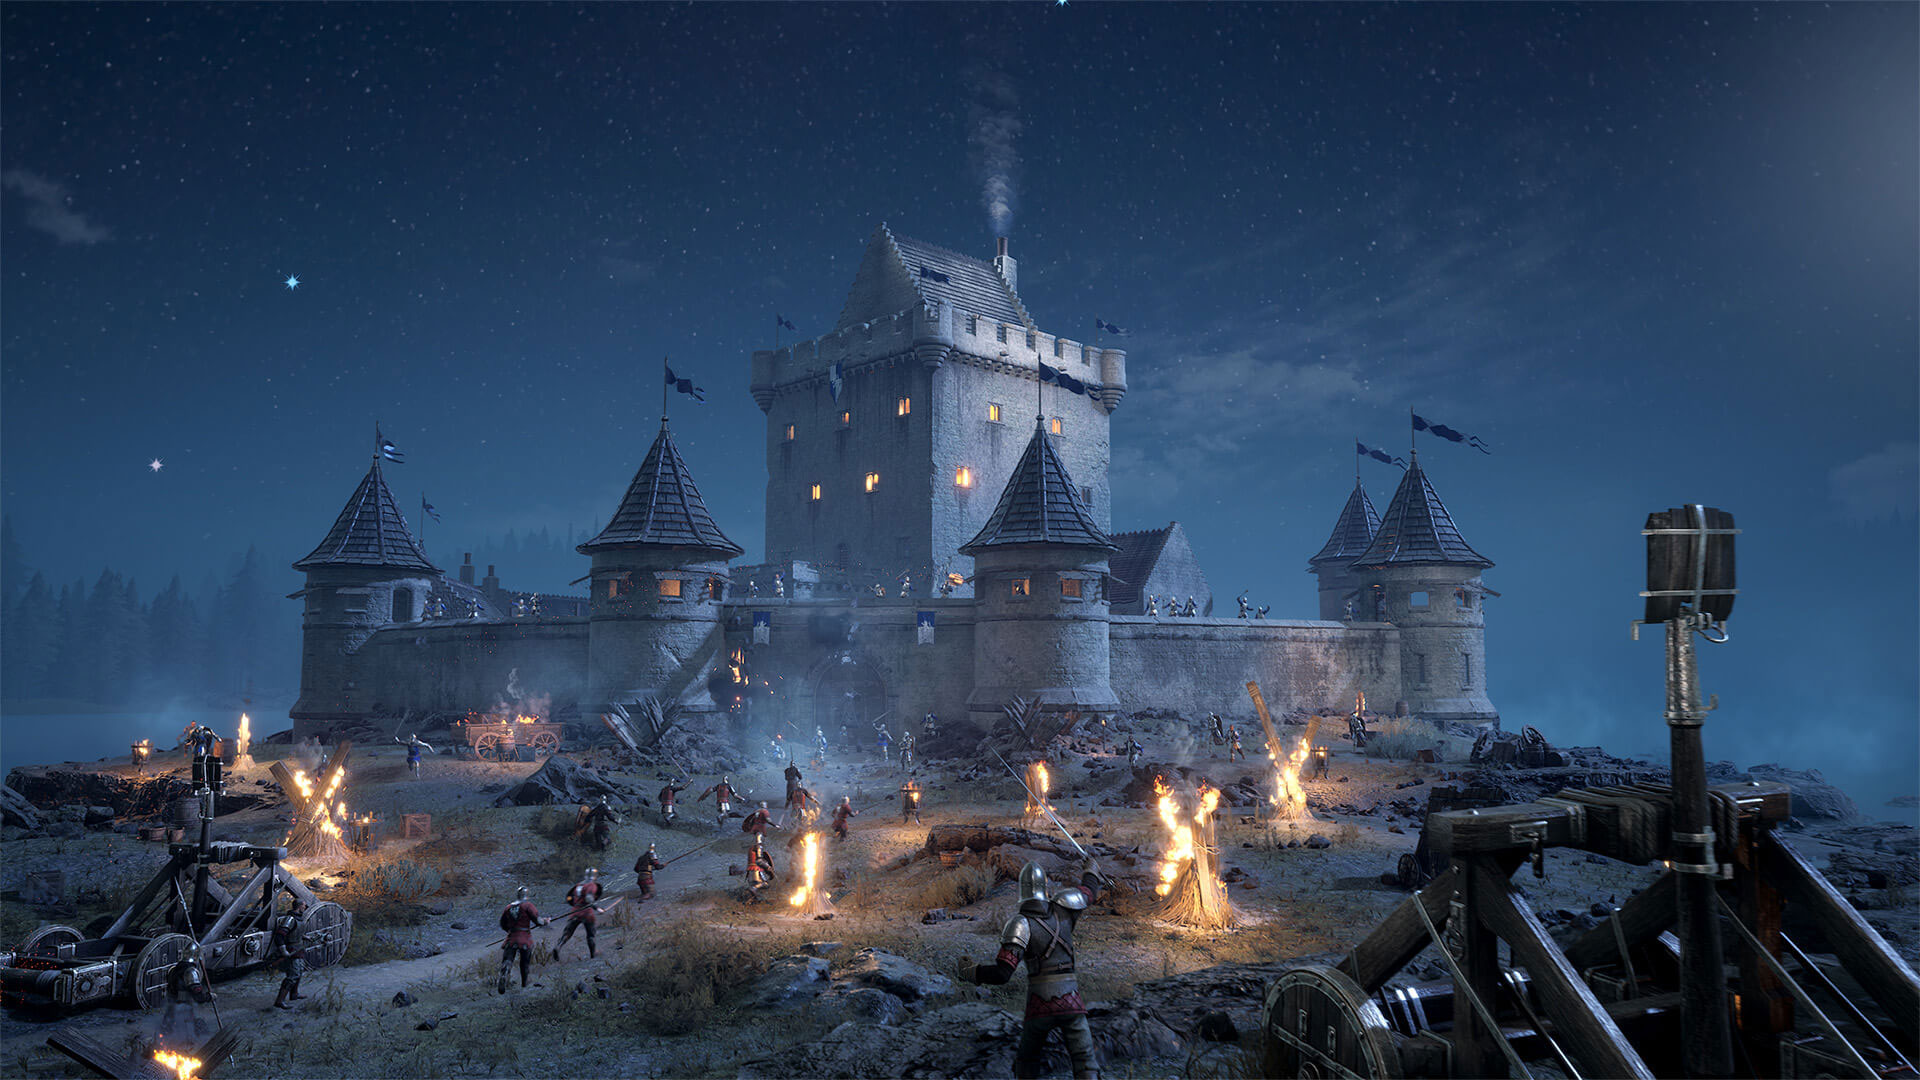 Chivalry 2 enters closed beta access on April 23-26 - Gamer Journalist